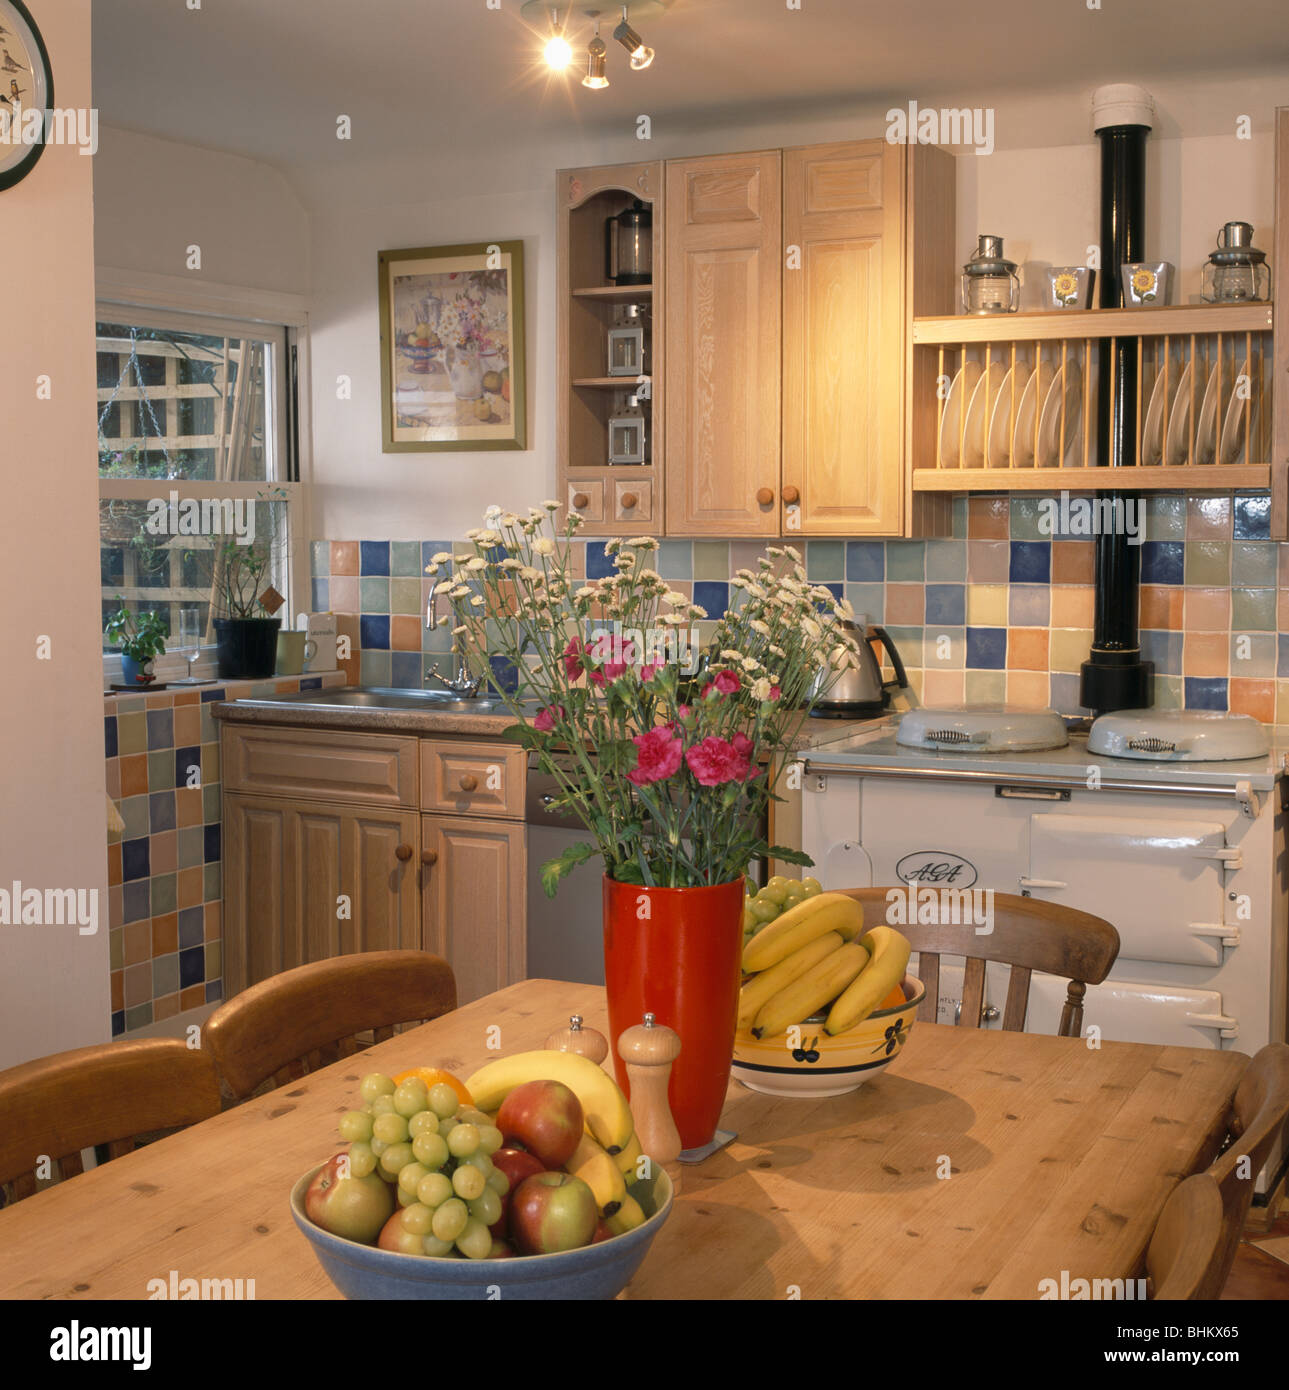 kitchen ceiling spot lighting. flowers in red vase on pine table with bowls of fruit country kitchen cream aga oven and ceiling spot-lights spot lighting